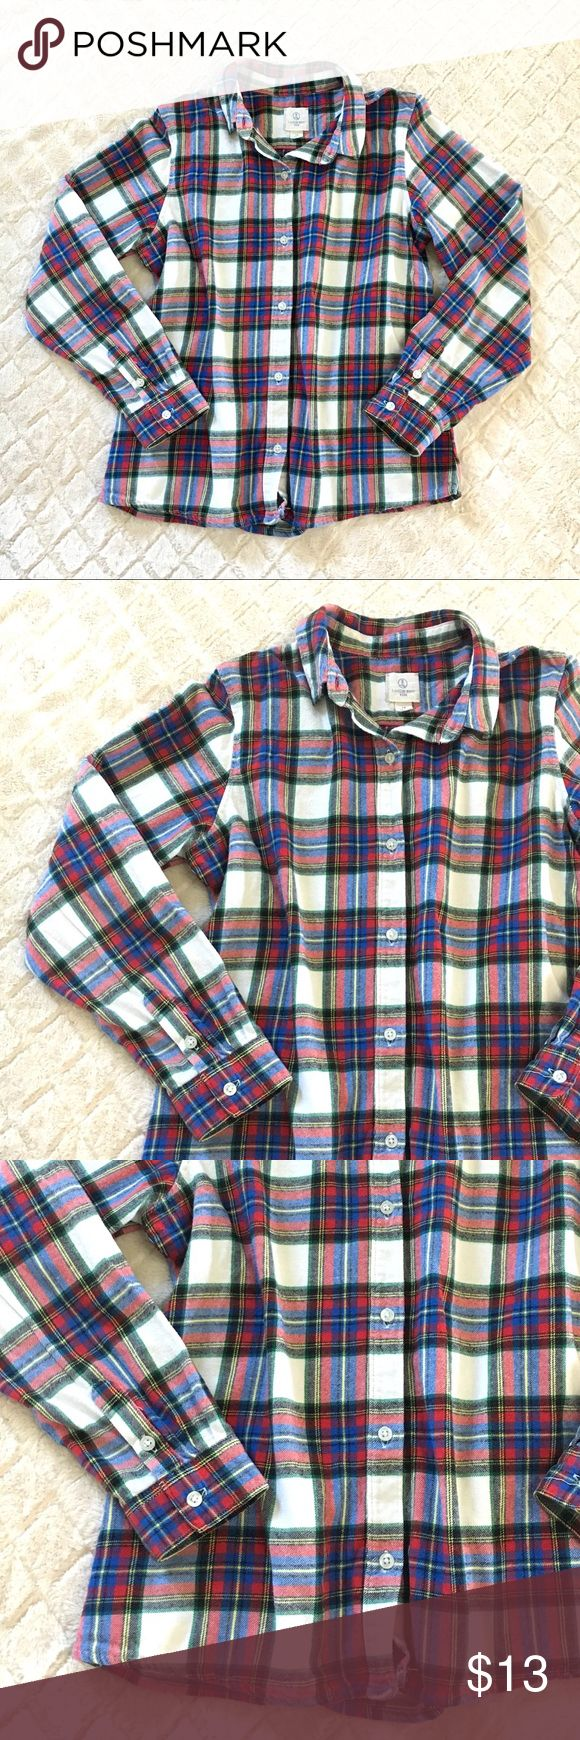 """Kids Lands' End flannel Cozy and warm flannel from Lands' End EUC Perfect for mountain camping this summer No stains or rips Last picture is for outfit inspiration only- not actual flannel  Pit to pit: 18"""" Length: 22"""" Sleeve length: 21.5""""  •Open to offers •Smoke free home Lands' End Shirts & Tops Button Down Shirts"""